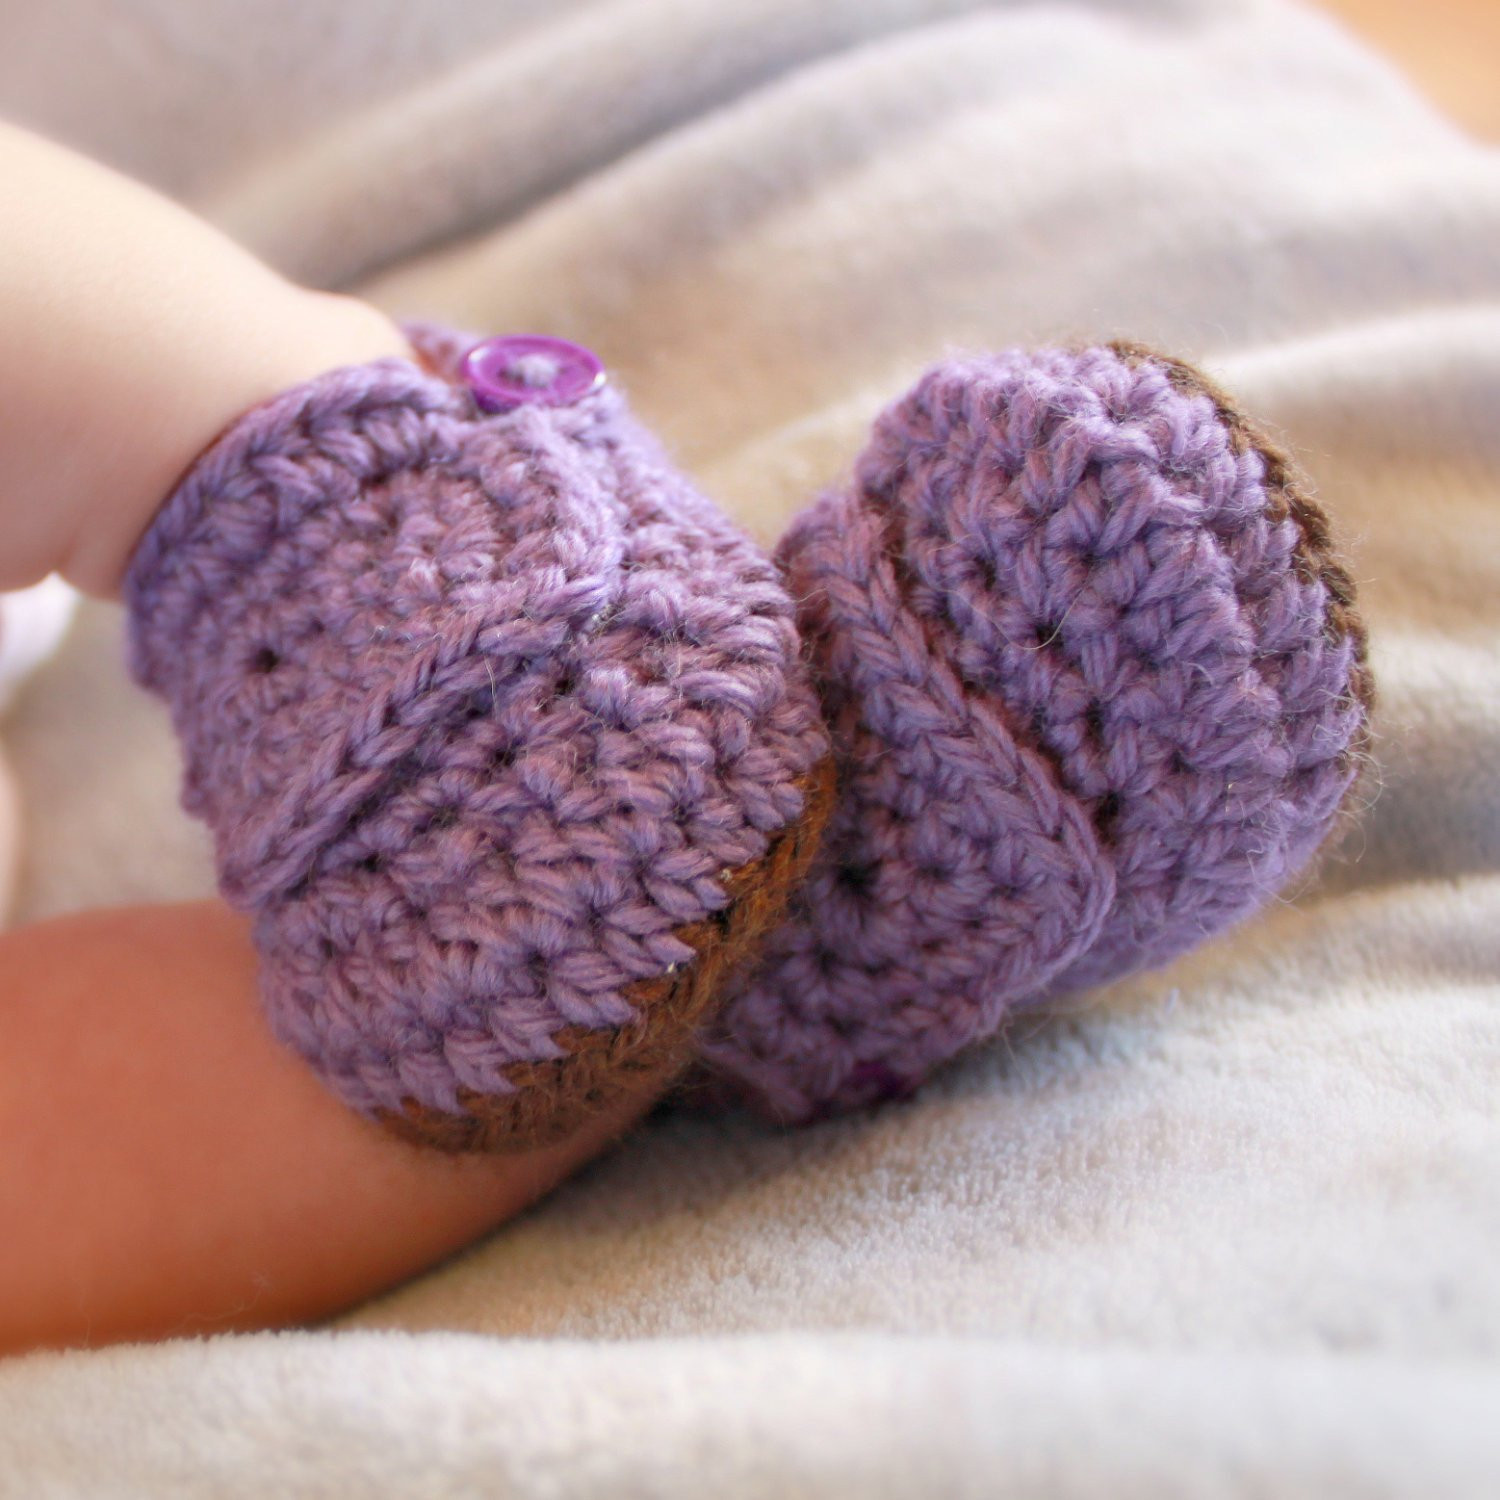 Baby Booties Crochet Pattern Elegant Instant Download Crochet Pattern Buccaneer Booties Of Top 49 Pictures Baby Booties Crochet Pattern